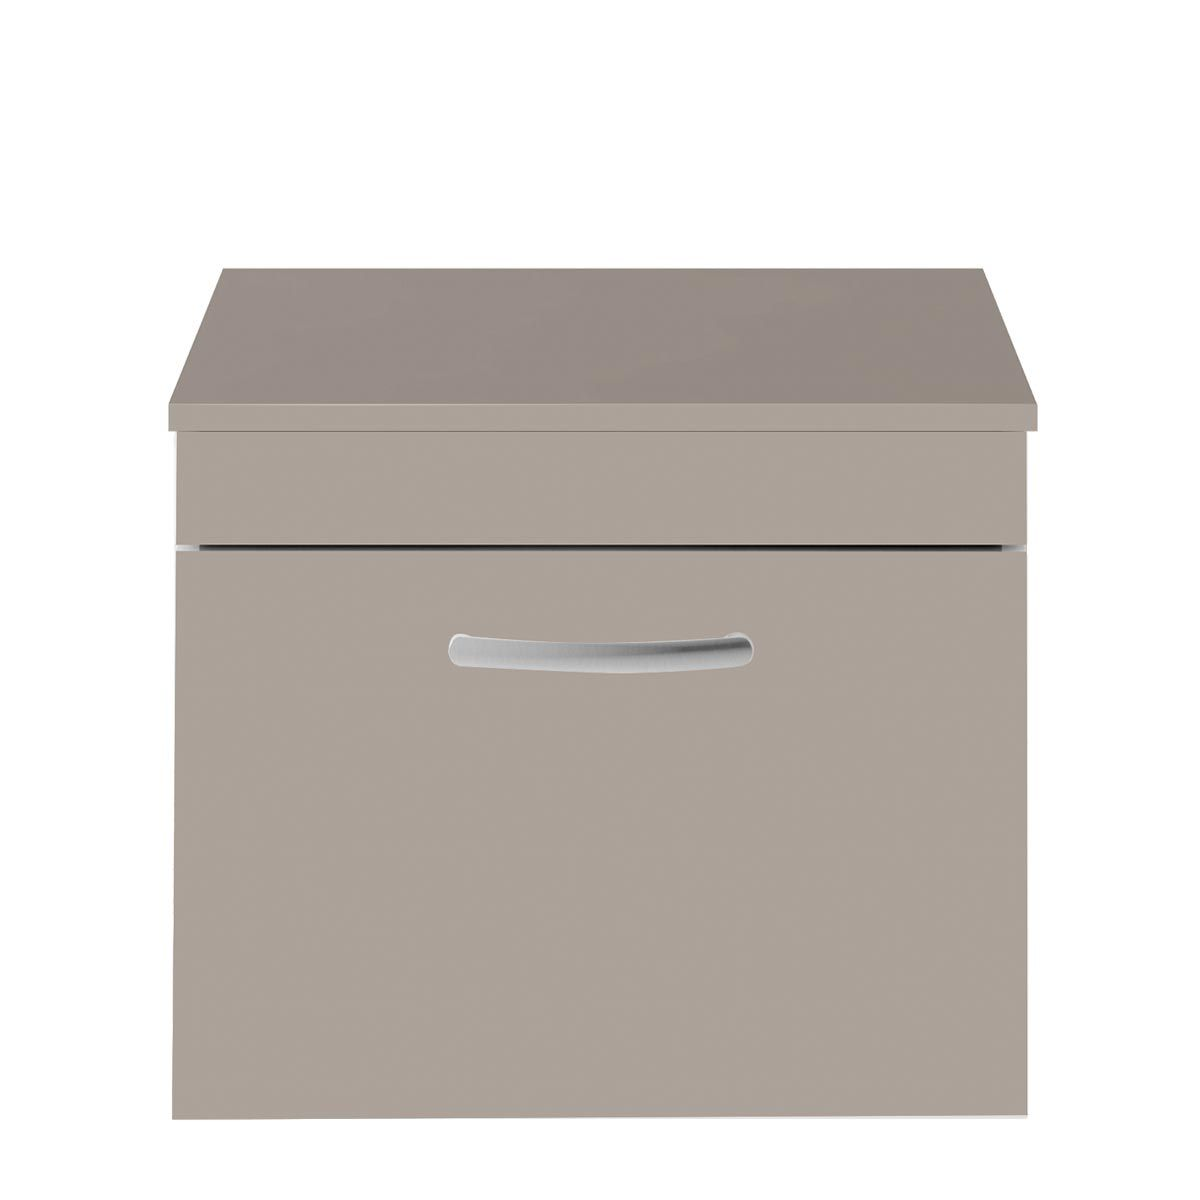 Nuie Athena Stone Grey 1 Drawer Wall Hung Vanity Unit with 18mm Worktop 600mm